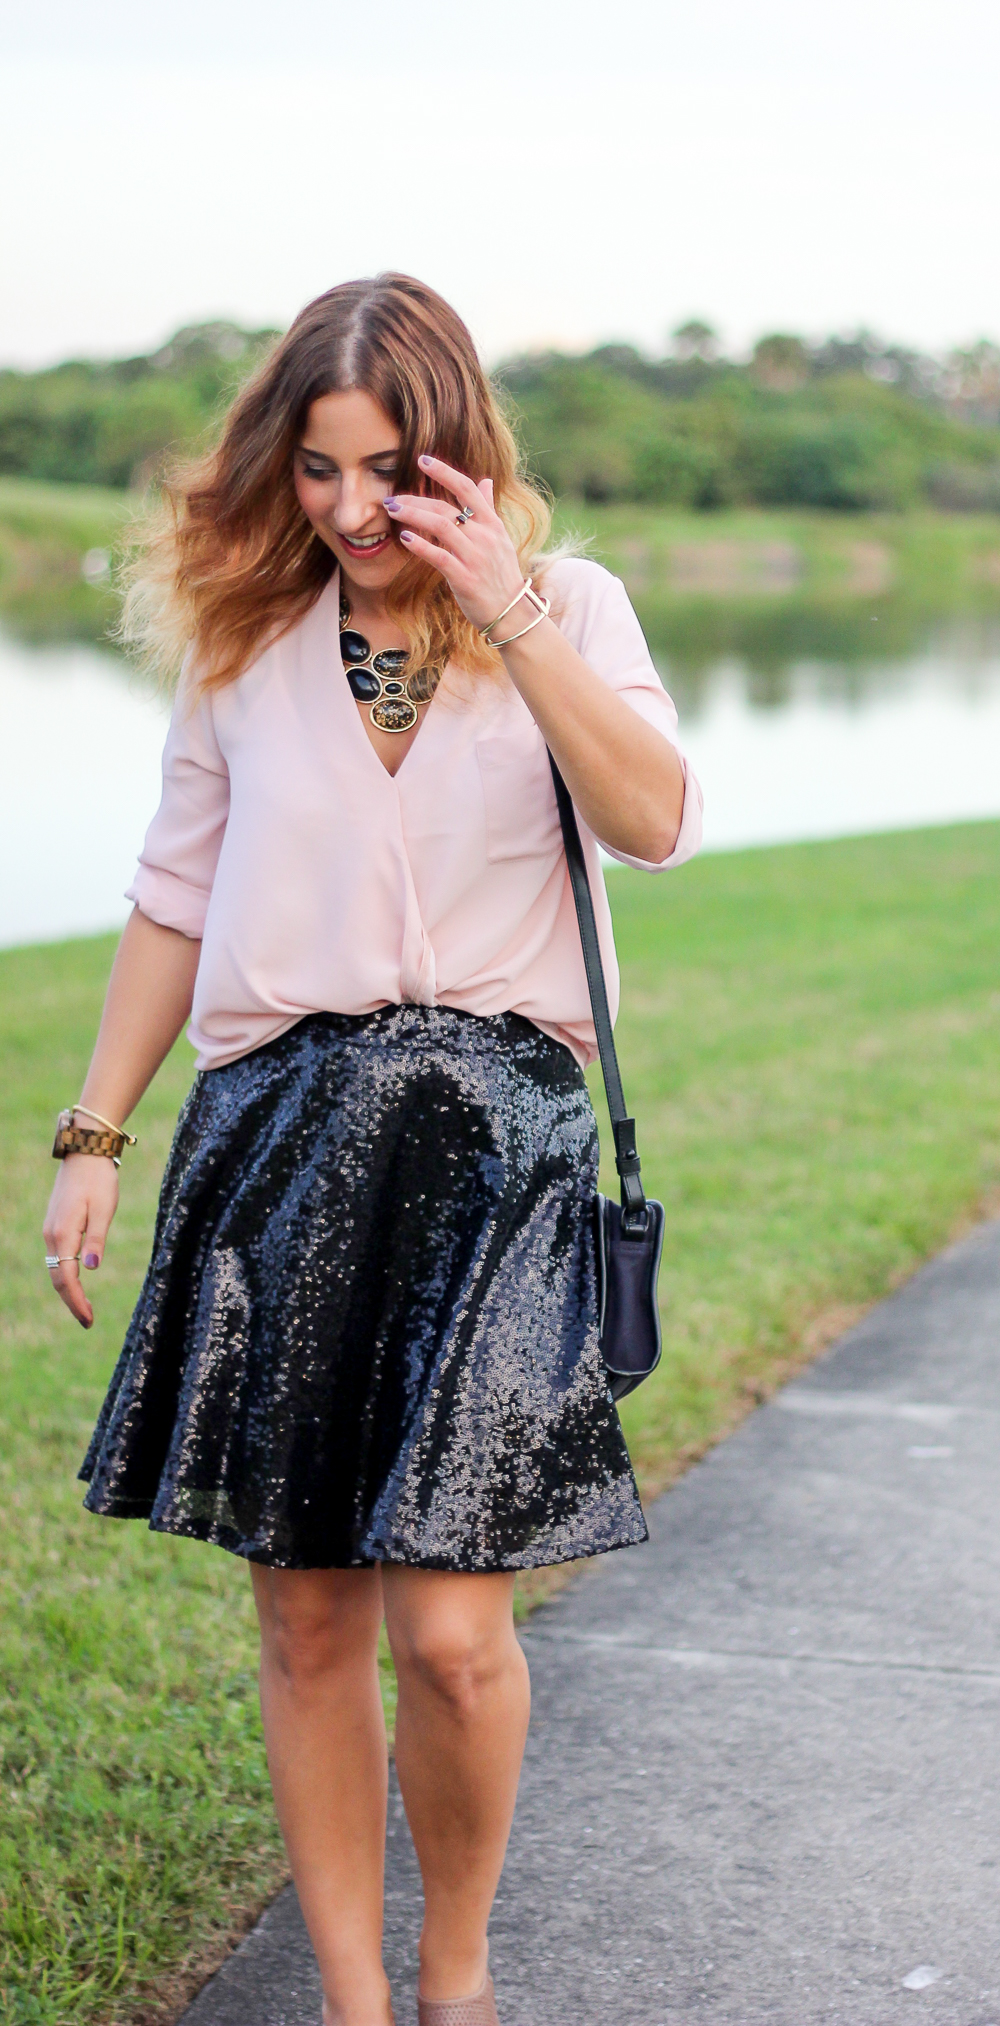 Last Minute New Year's Eve Outfit Ideas, featuring a sequin skirt from Target and a pink blouse from Topshop